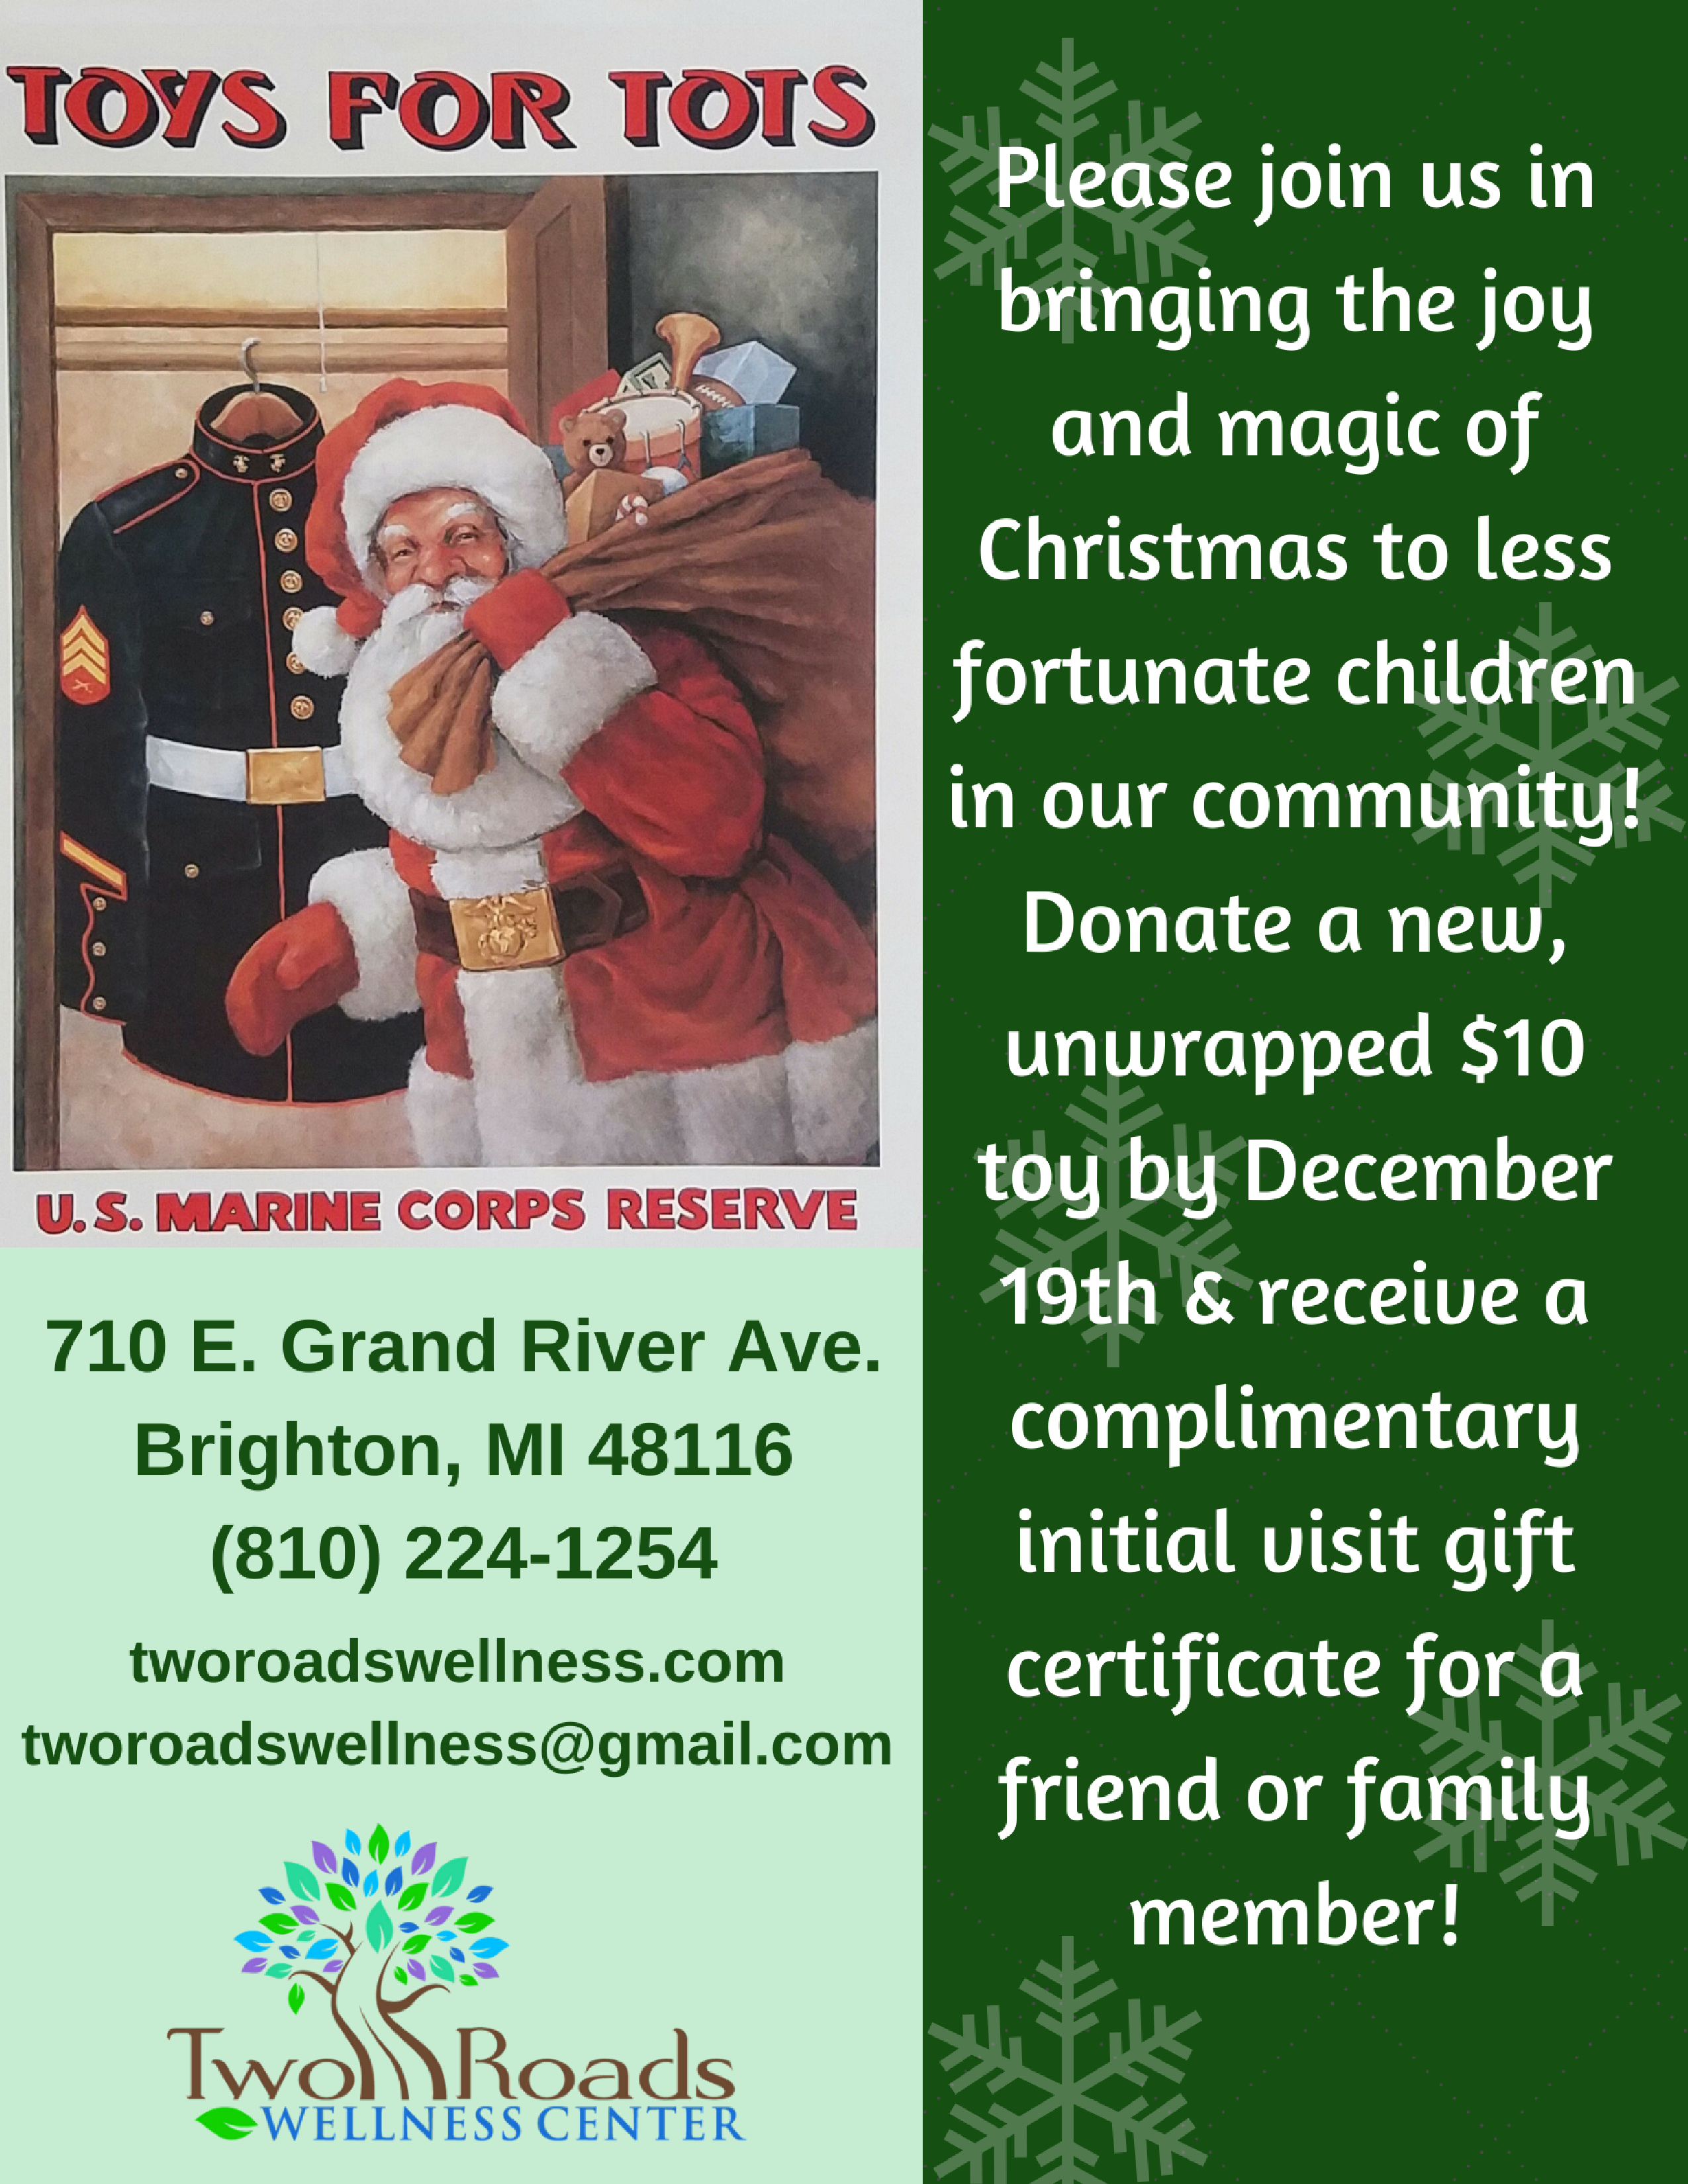 Toys for Tots promo